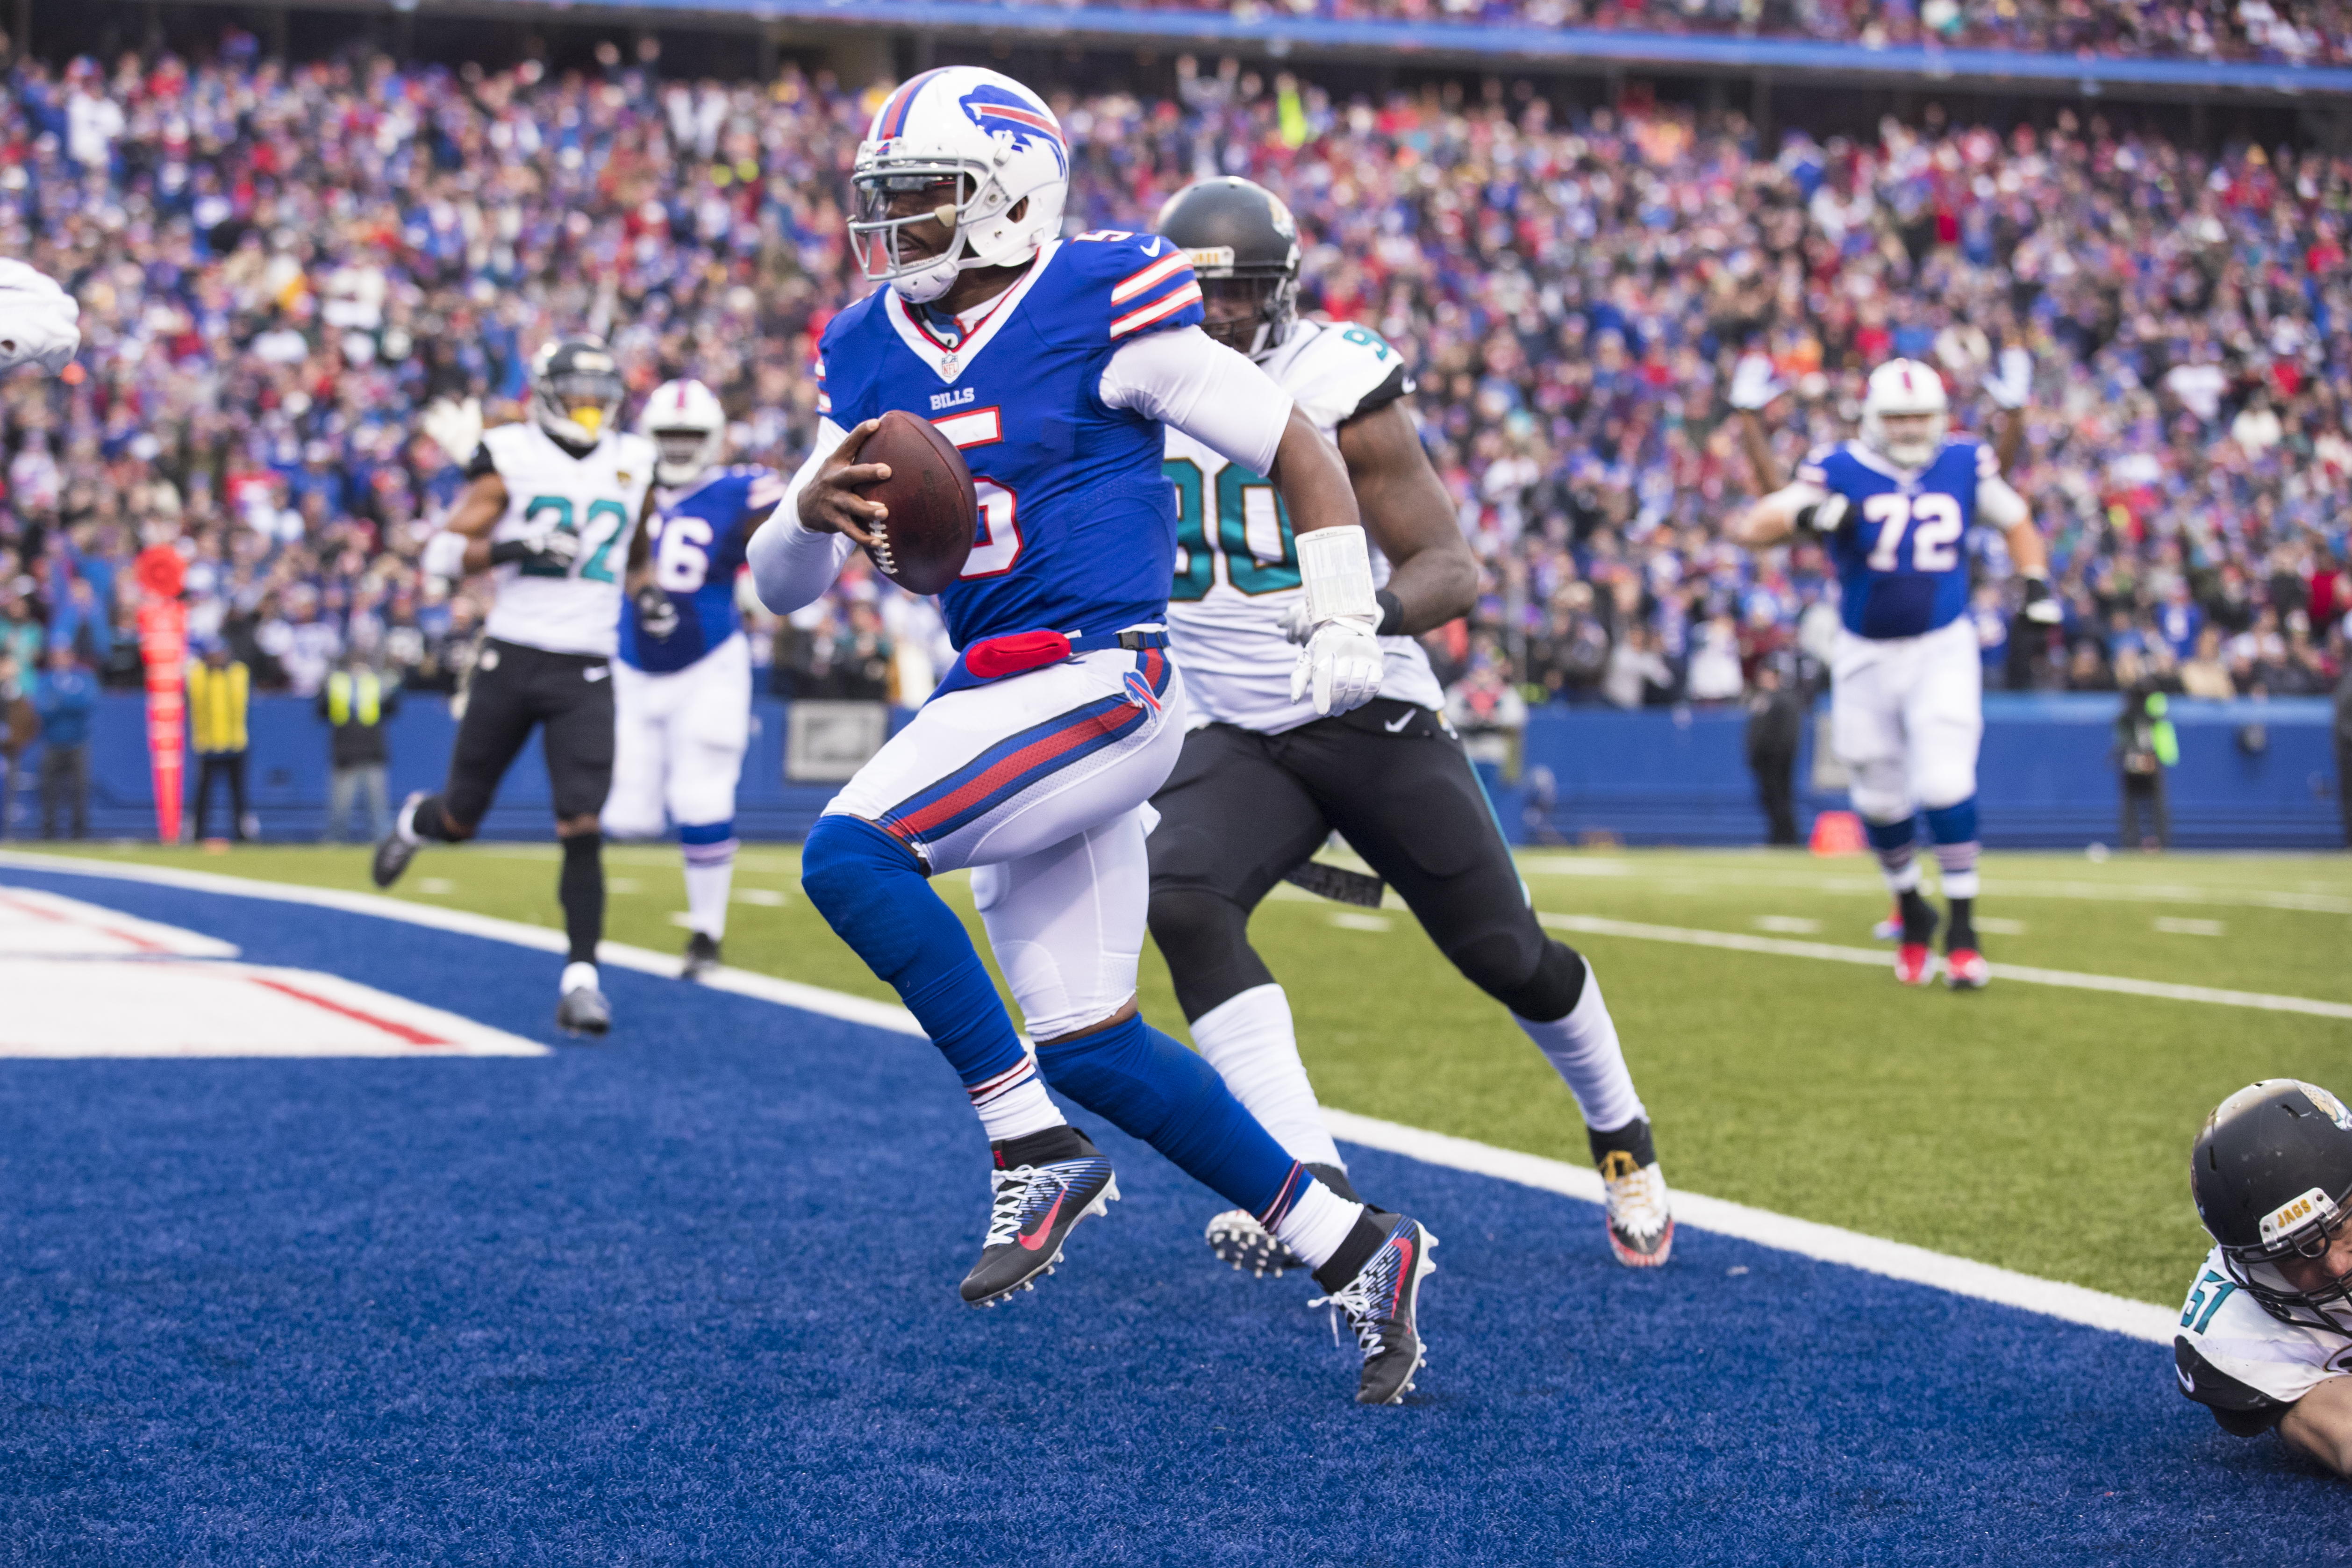 Tyrod Taylor needs 43 rushing yards to pass Jim Kelly on the Bills' all-time list among quarterbacks. (Getty Images)